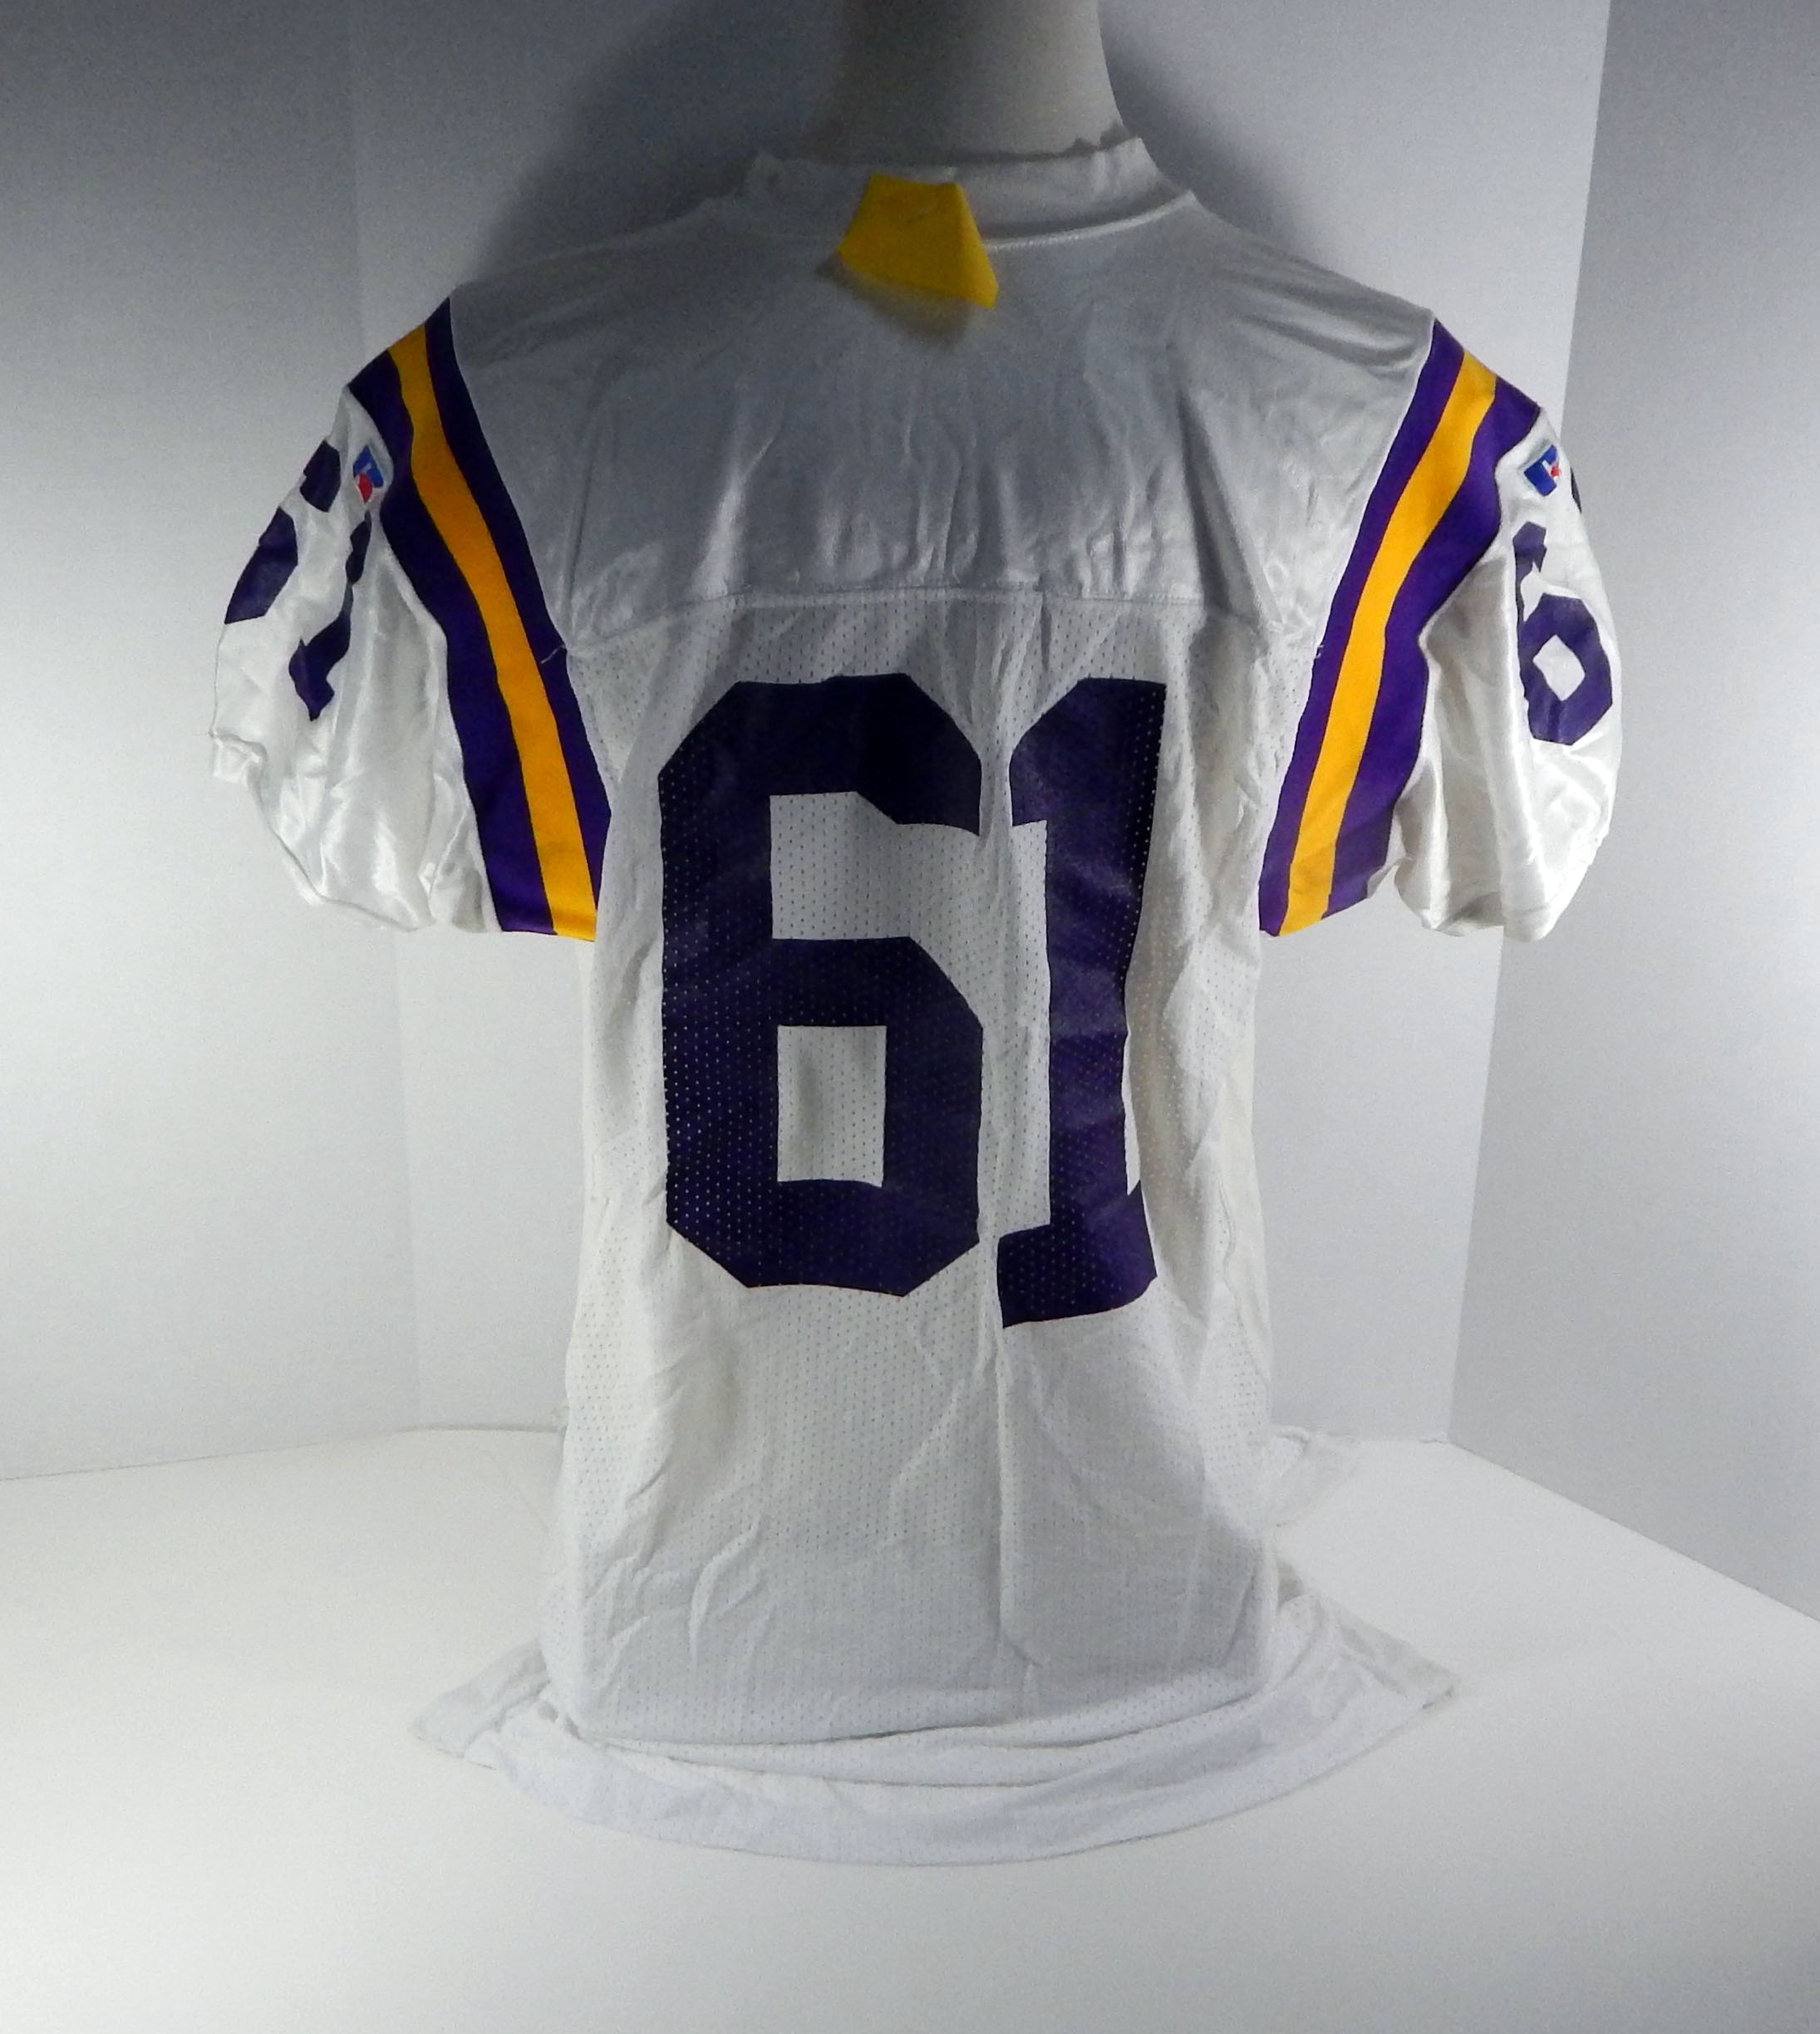 wholesale dealer e66da f331f Details about Minnesota Vikings #61 Game Issued White Jersey